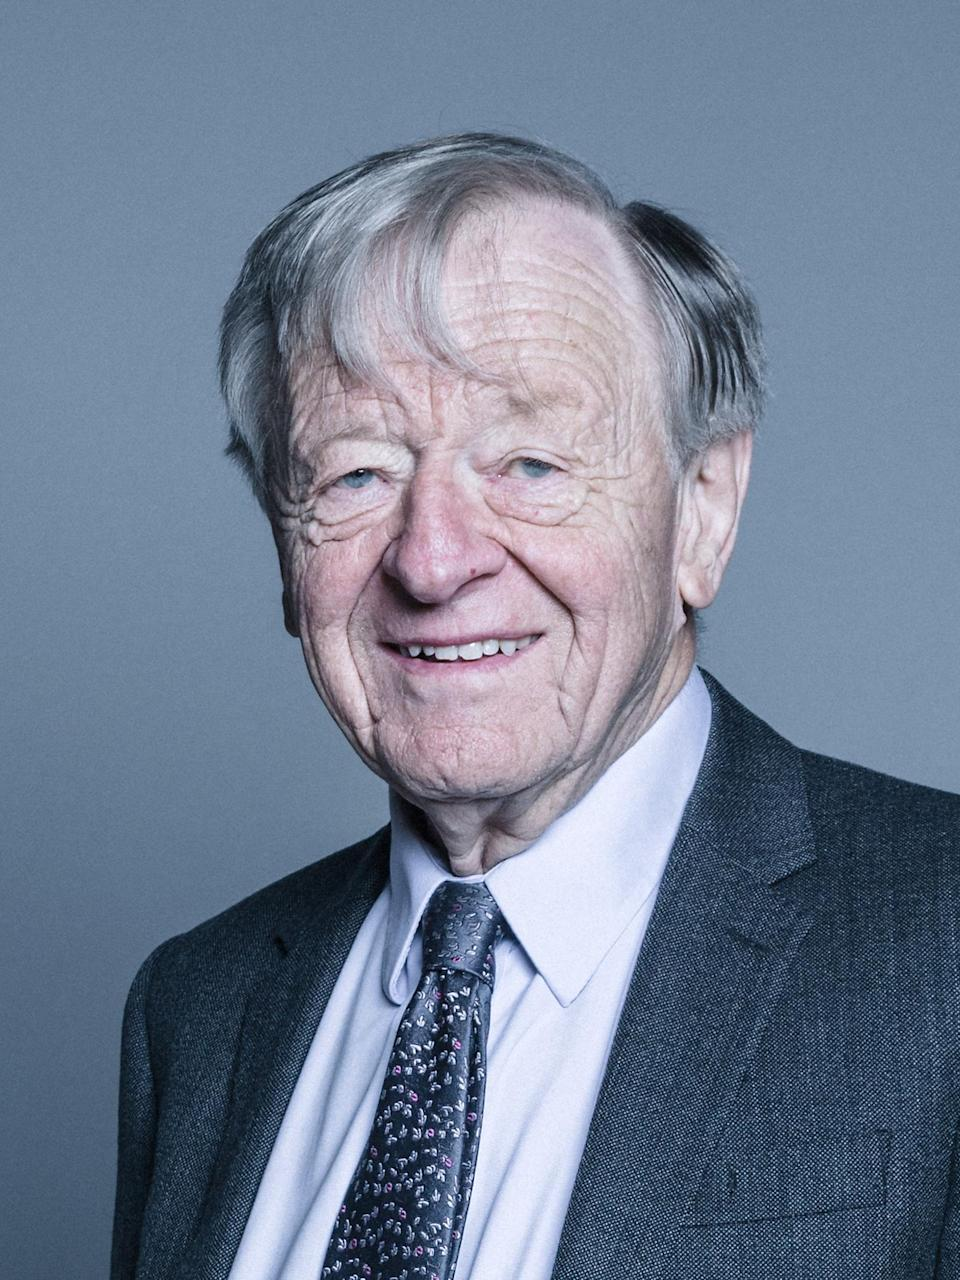 Labour peer Lord Dubs (UK Parliament)